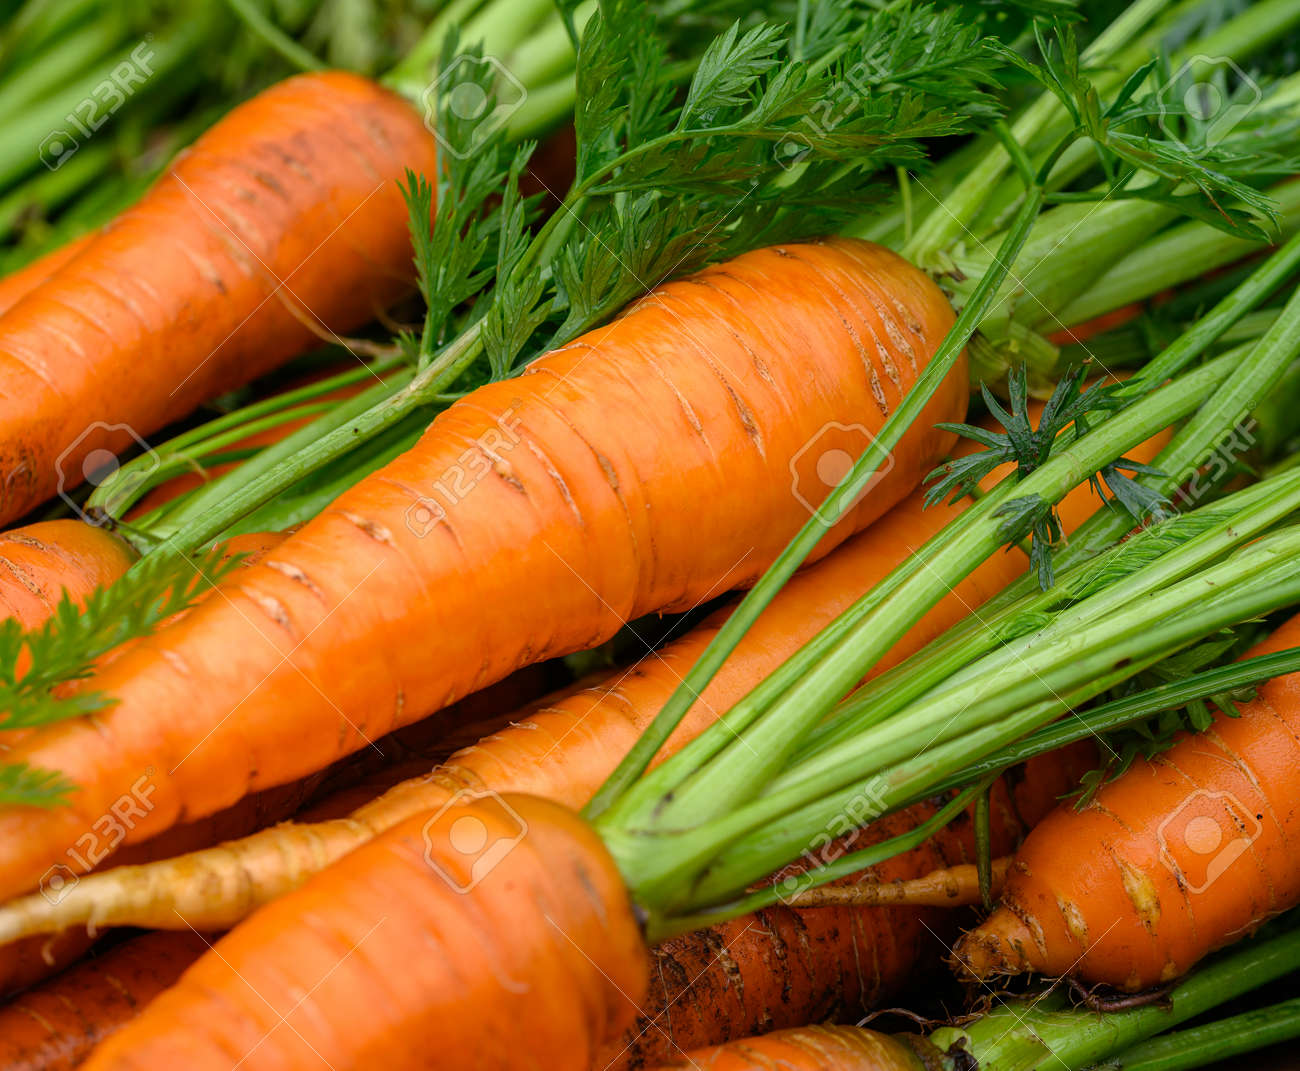 Crop of Fresh organic washed carrots with green tops - 172105162